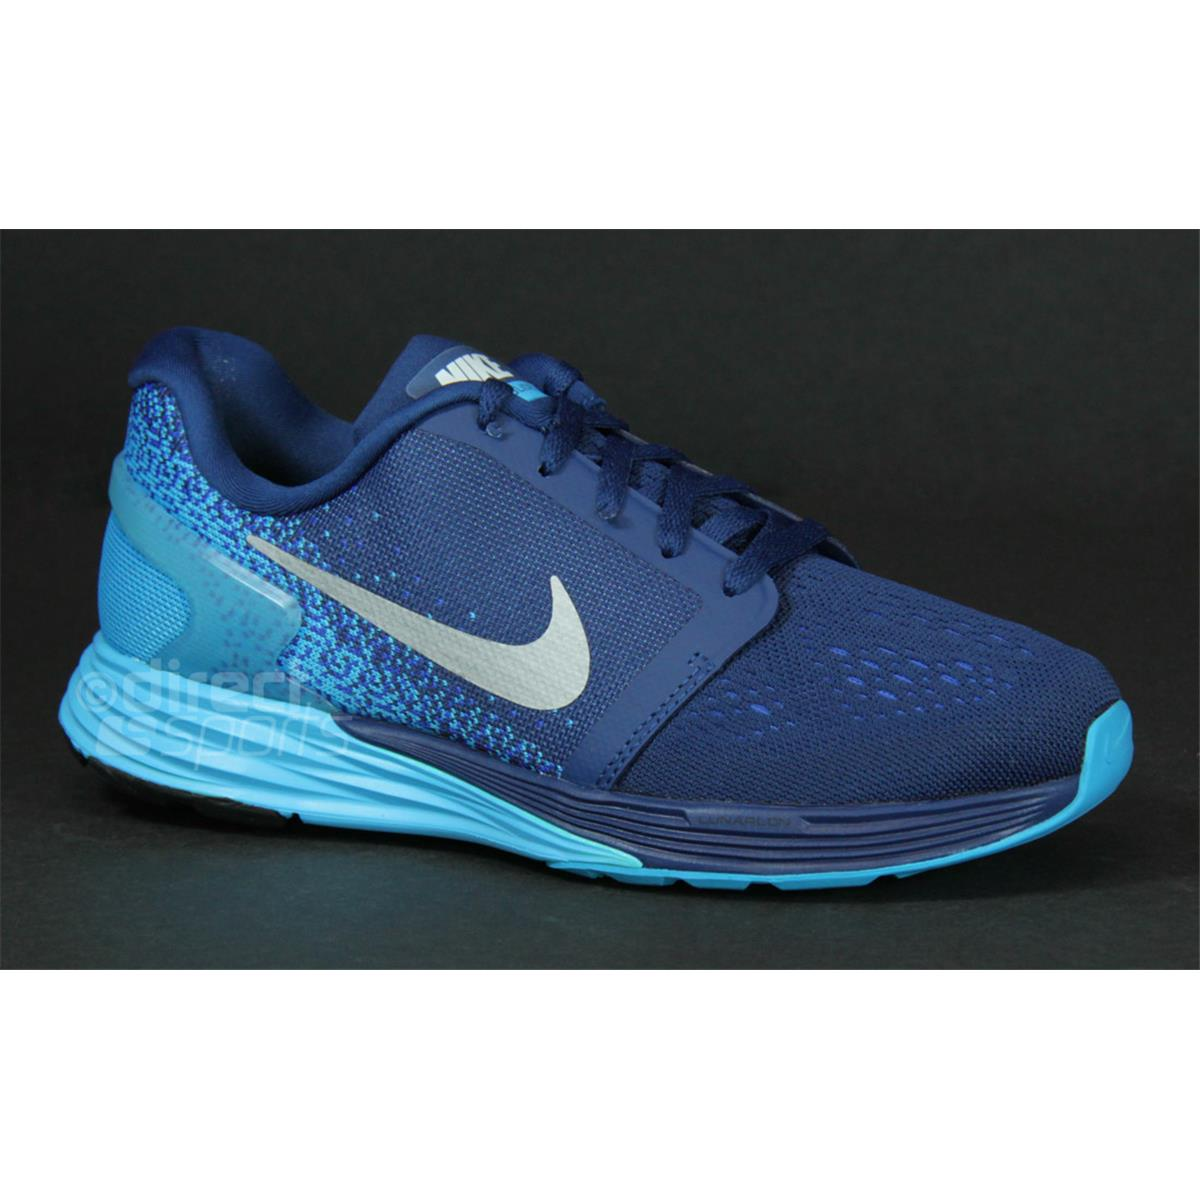 ... cheap shoes nike back to list nike lunarglide 7 gs junior running shoes  blue . fe279 fff764aab